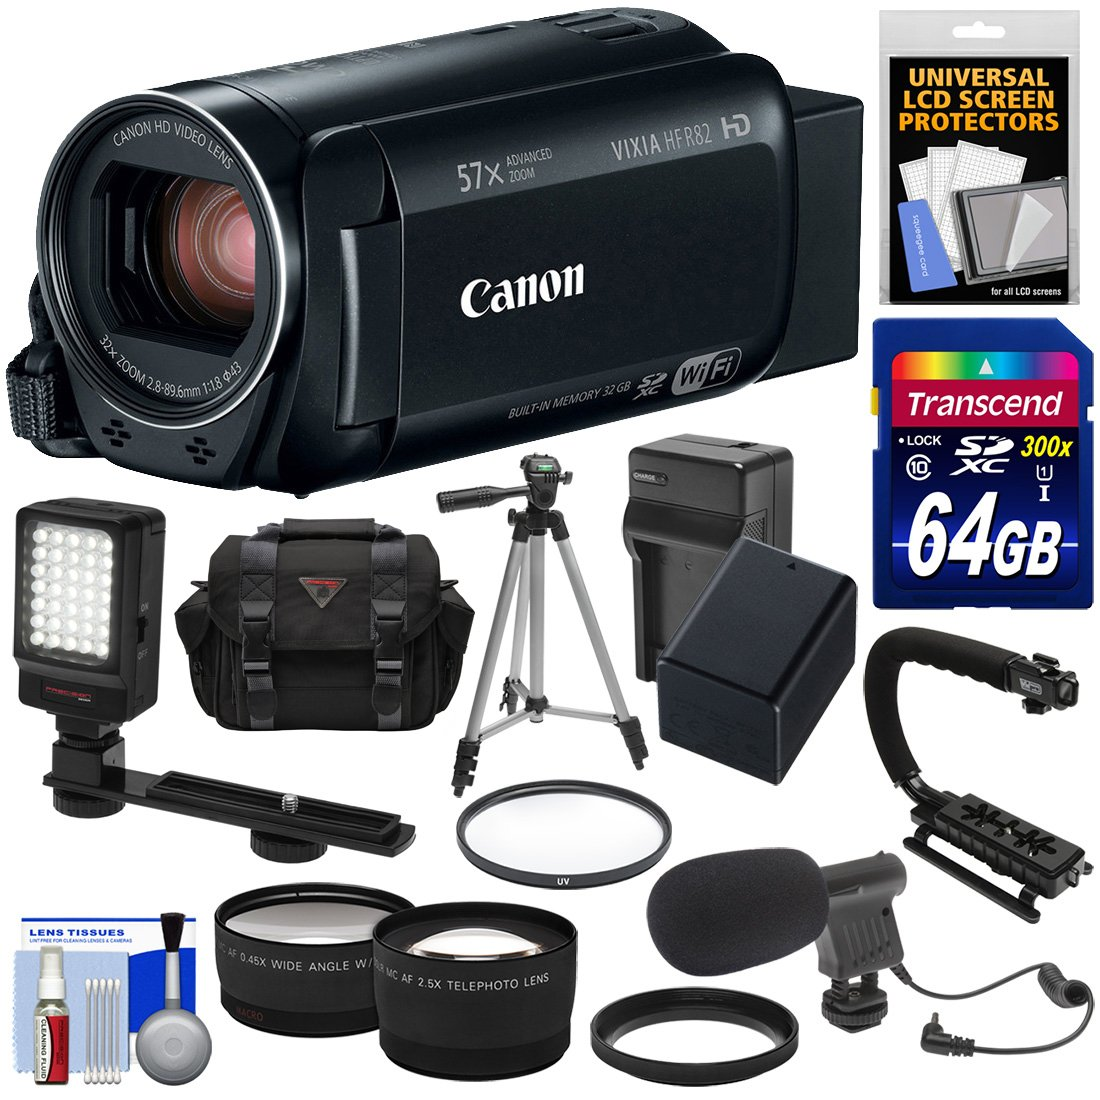 Canon Vixia HF R82 32GB Wi-Fi 1080p HD Video Camera Camcorder + 64GB Card + Battery & Charger + Case + Tripod + Stabilizer + LED + Mic + 2 Lens Kit